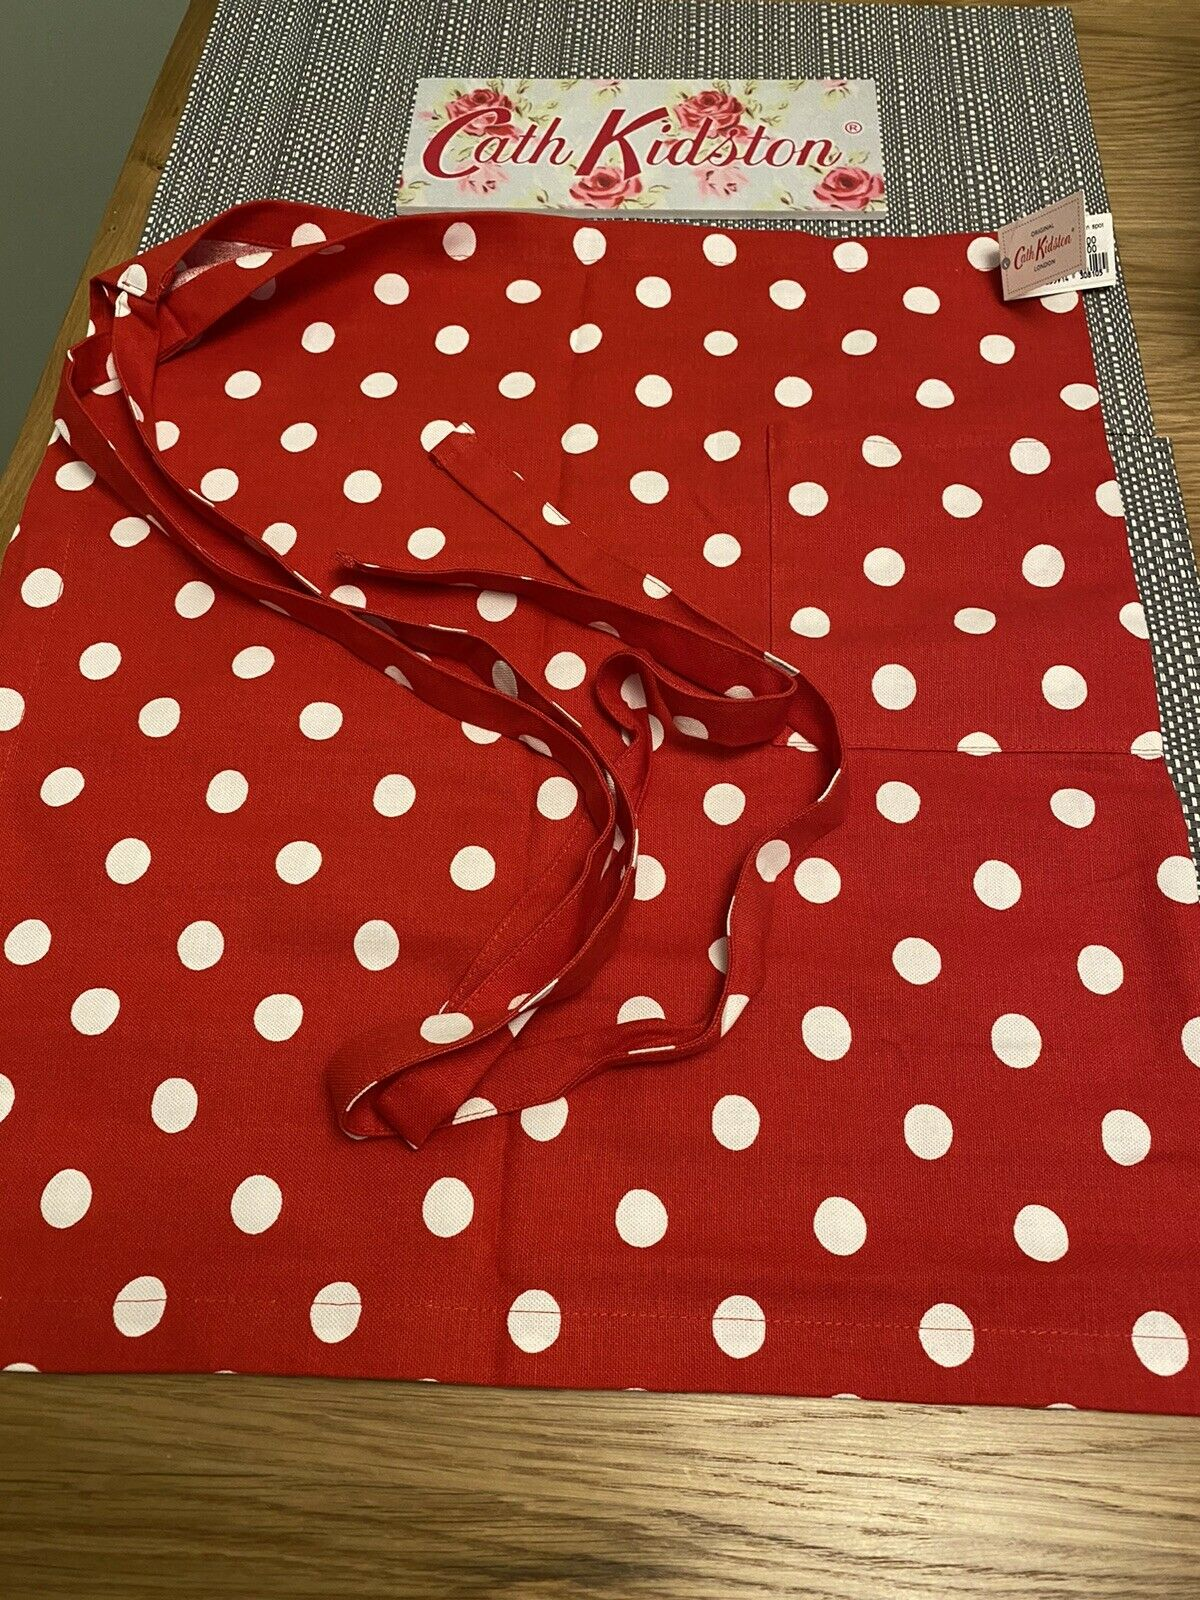 Cath Kidston Half Apron - Red Button Spot, Cotton Brand New With Tags- Free Post